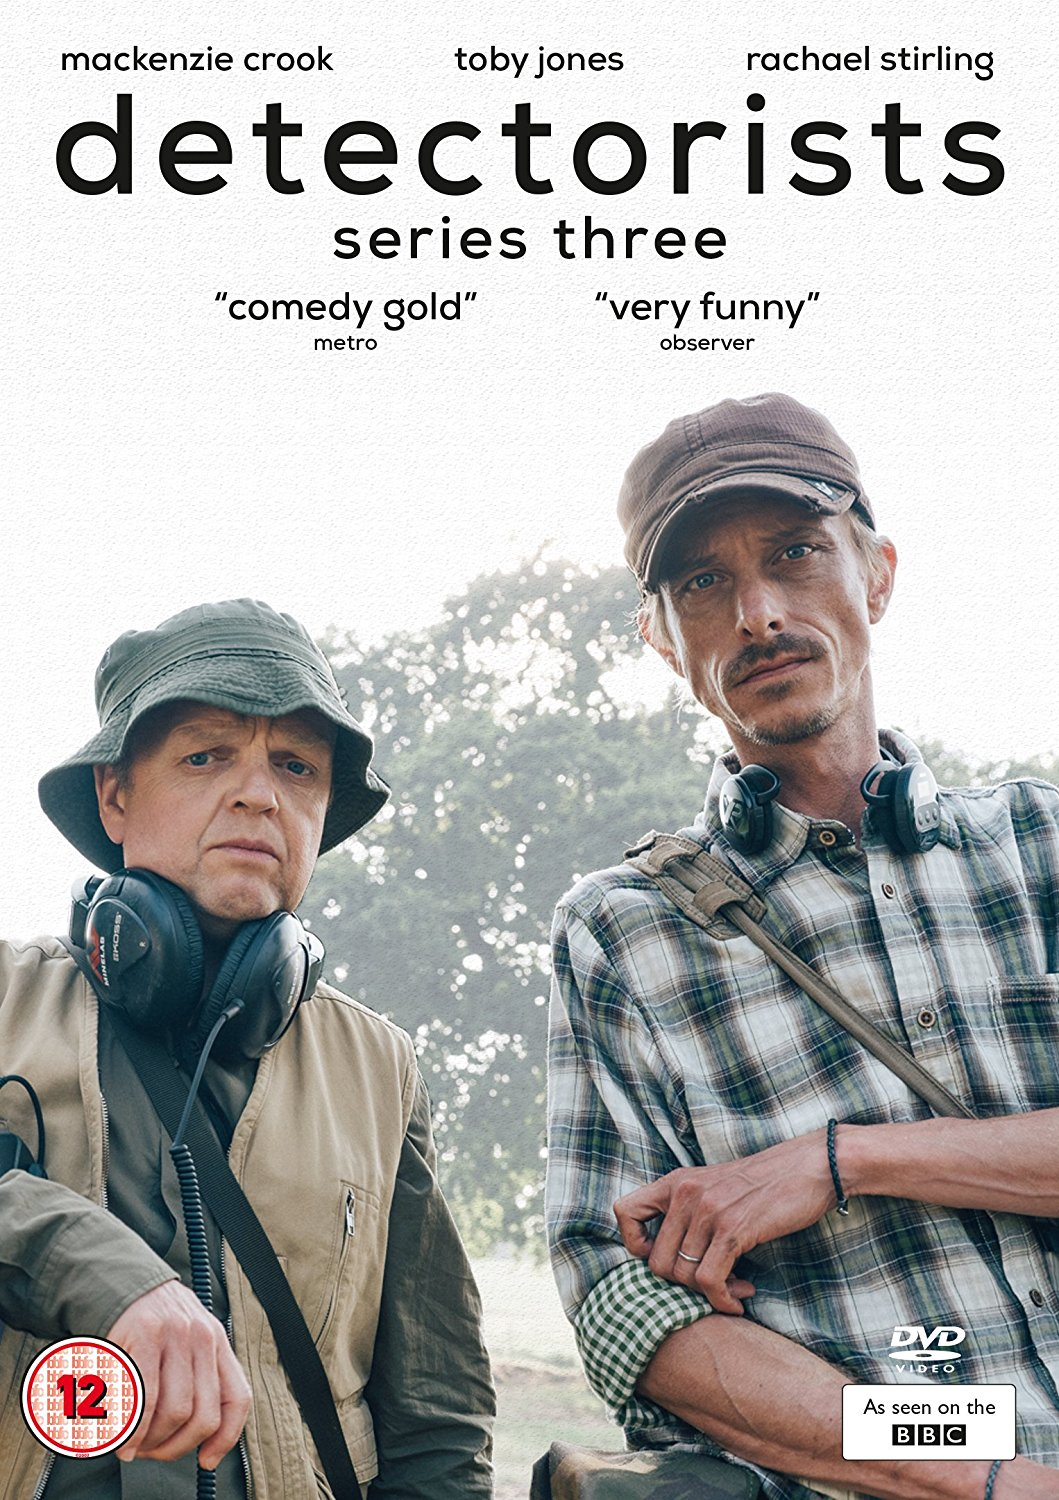 Detectorists Series 3 arrives on DVD on the 18th December and we have a copy of the series to giveaway to one lucky winner.